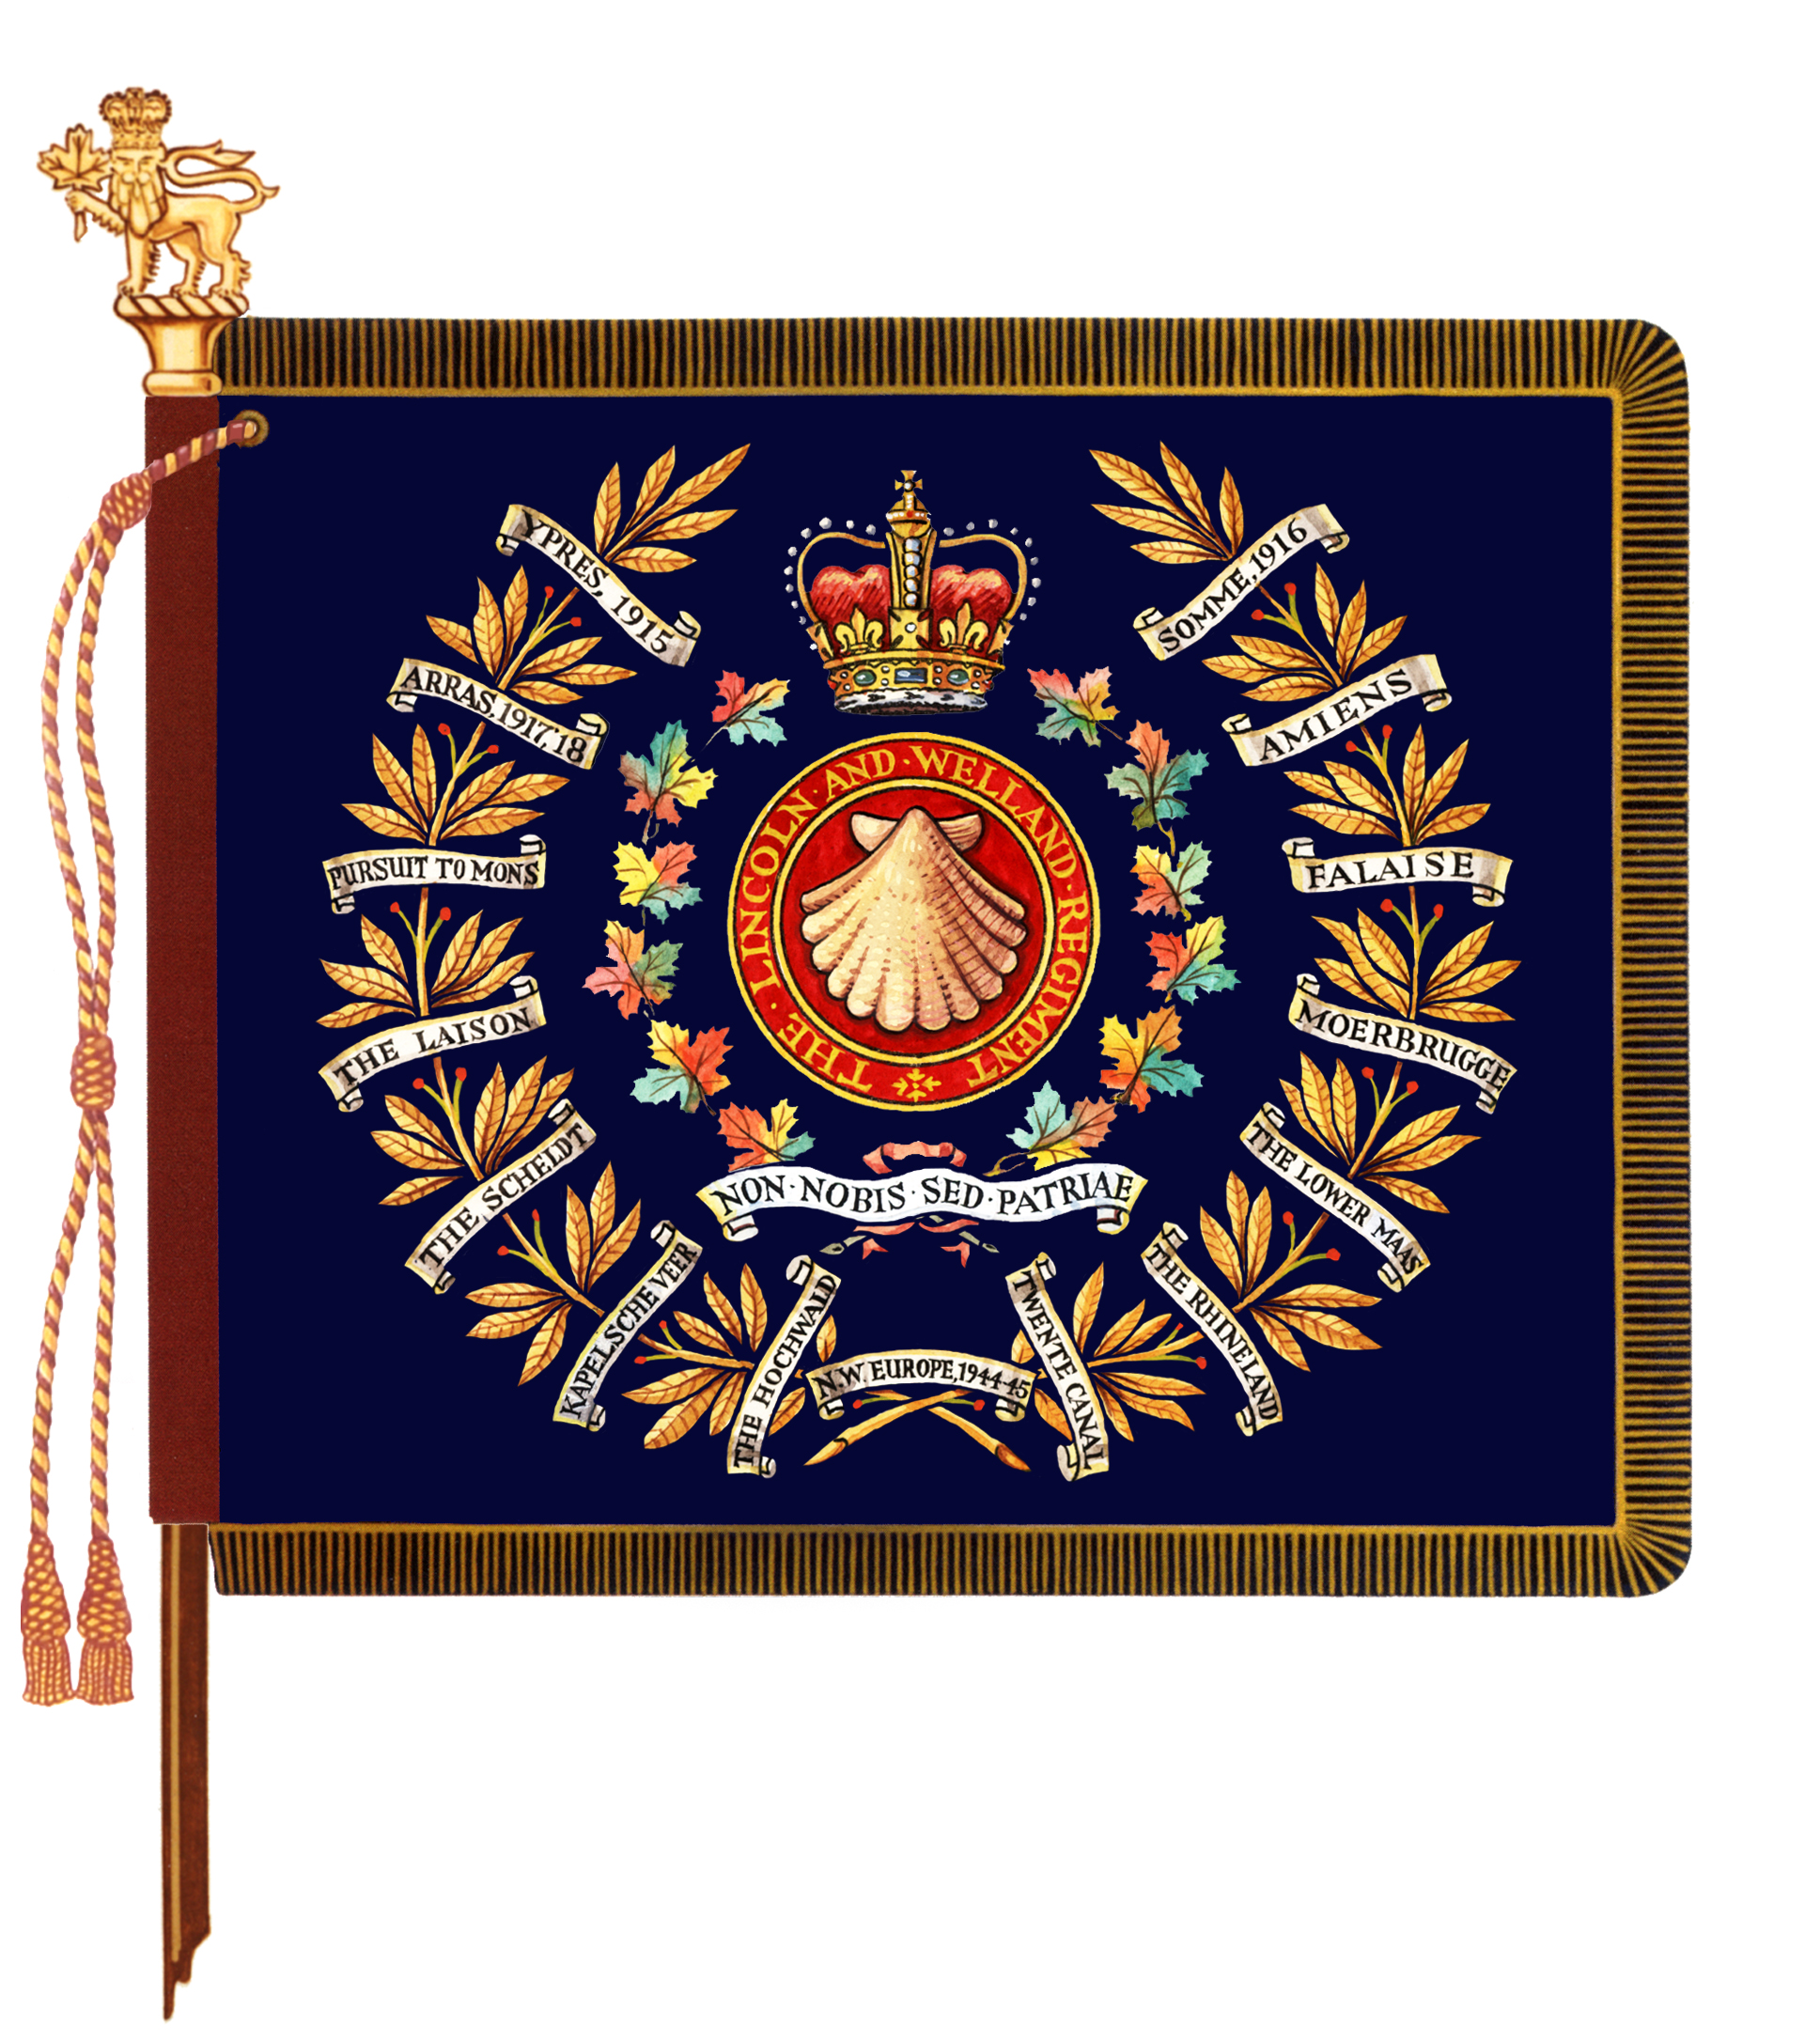 The Lincoln and Welland Regiment